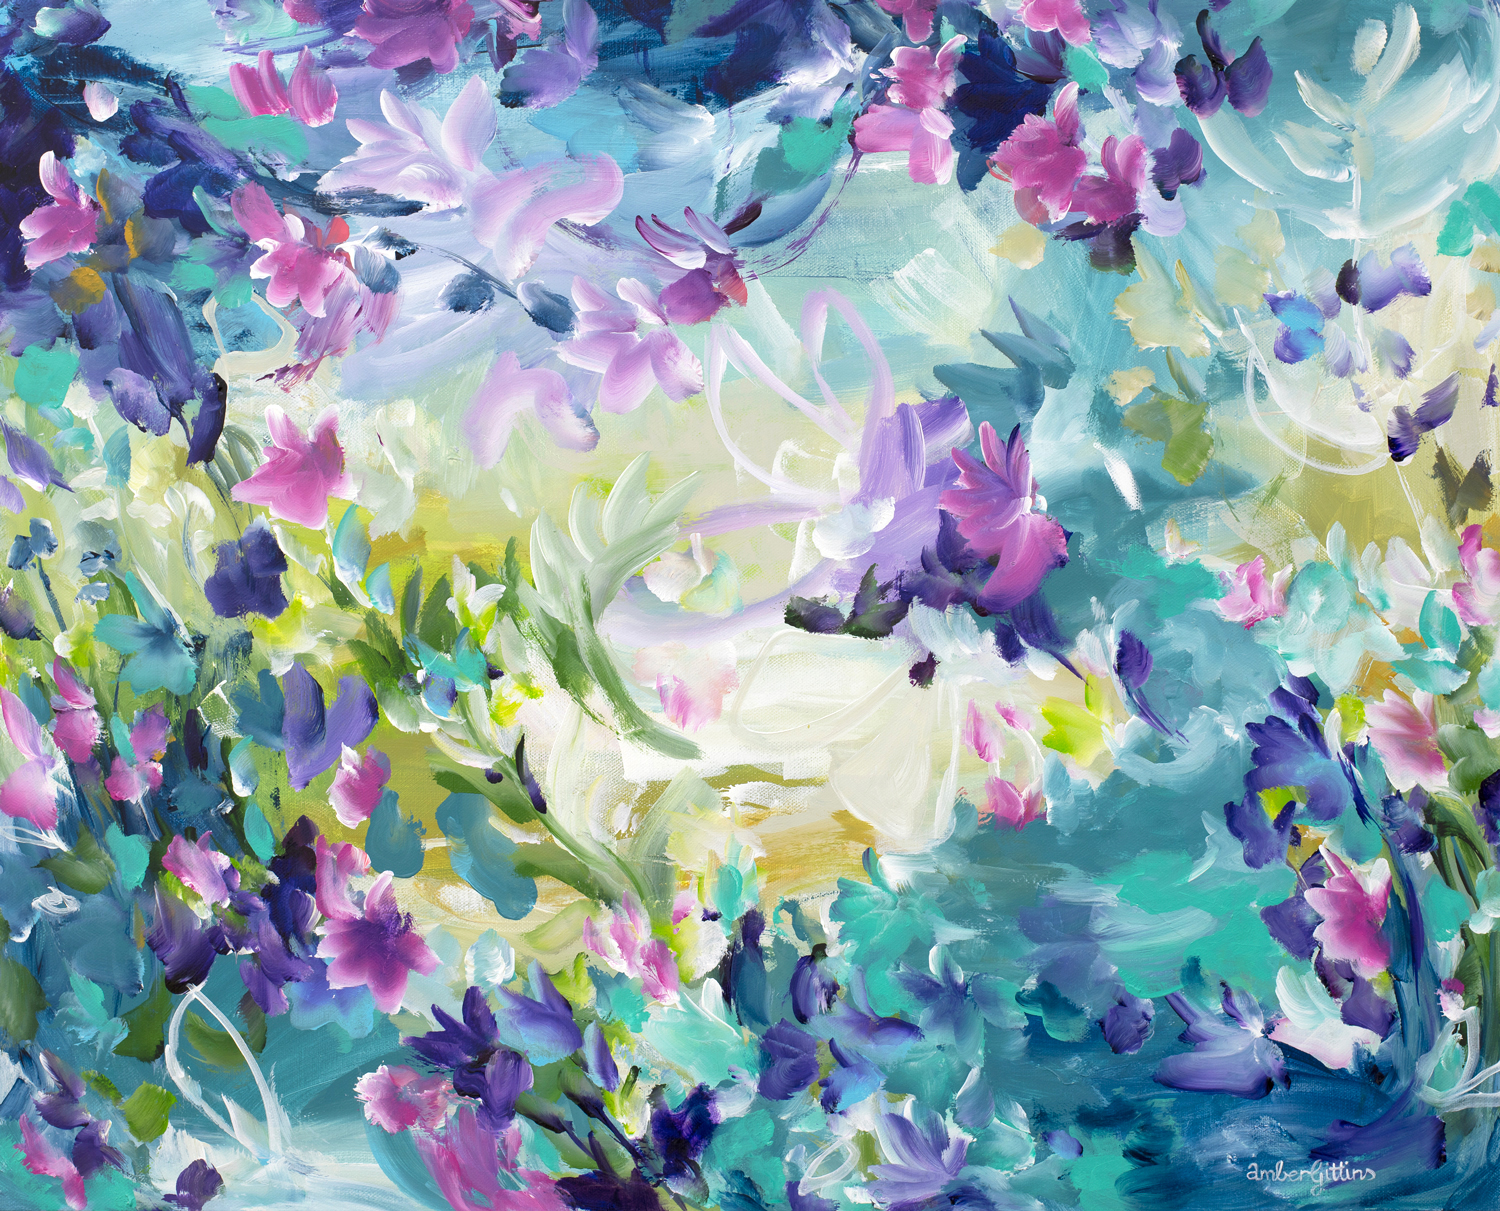 Floral Dreams By Australian Artist Amber Gittins